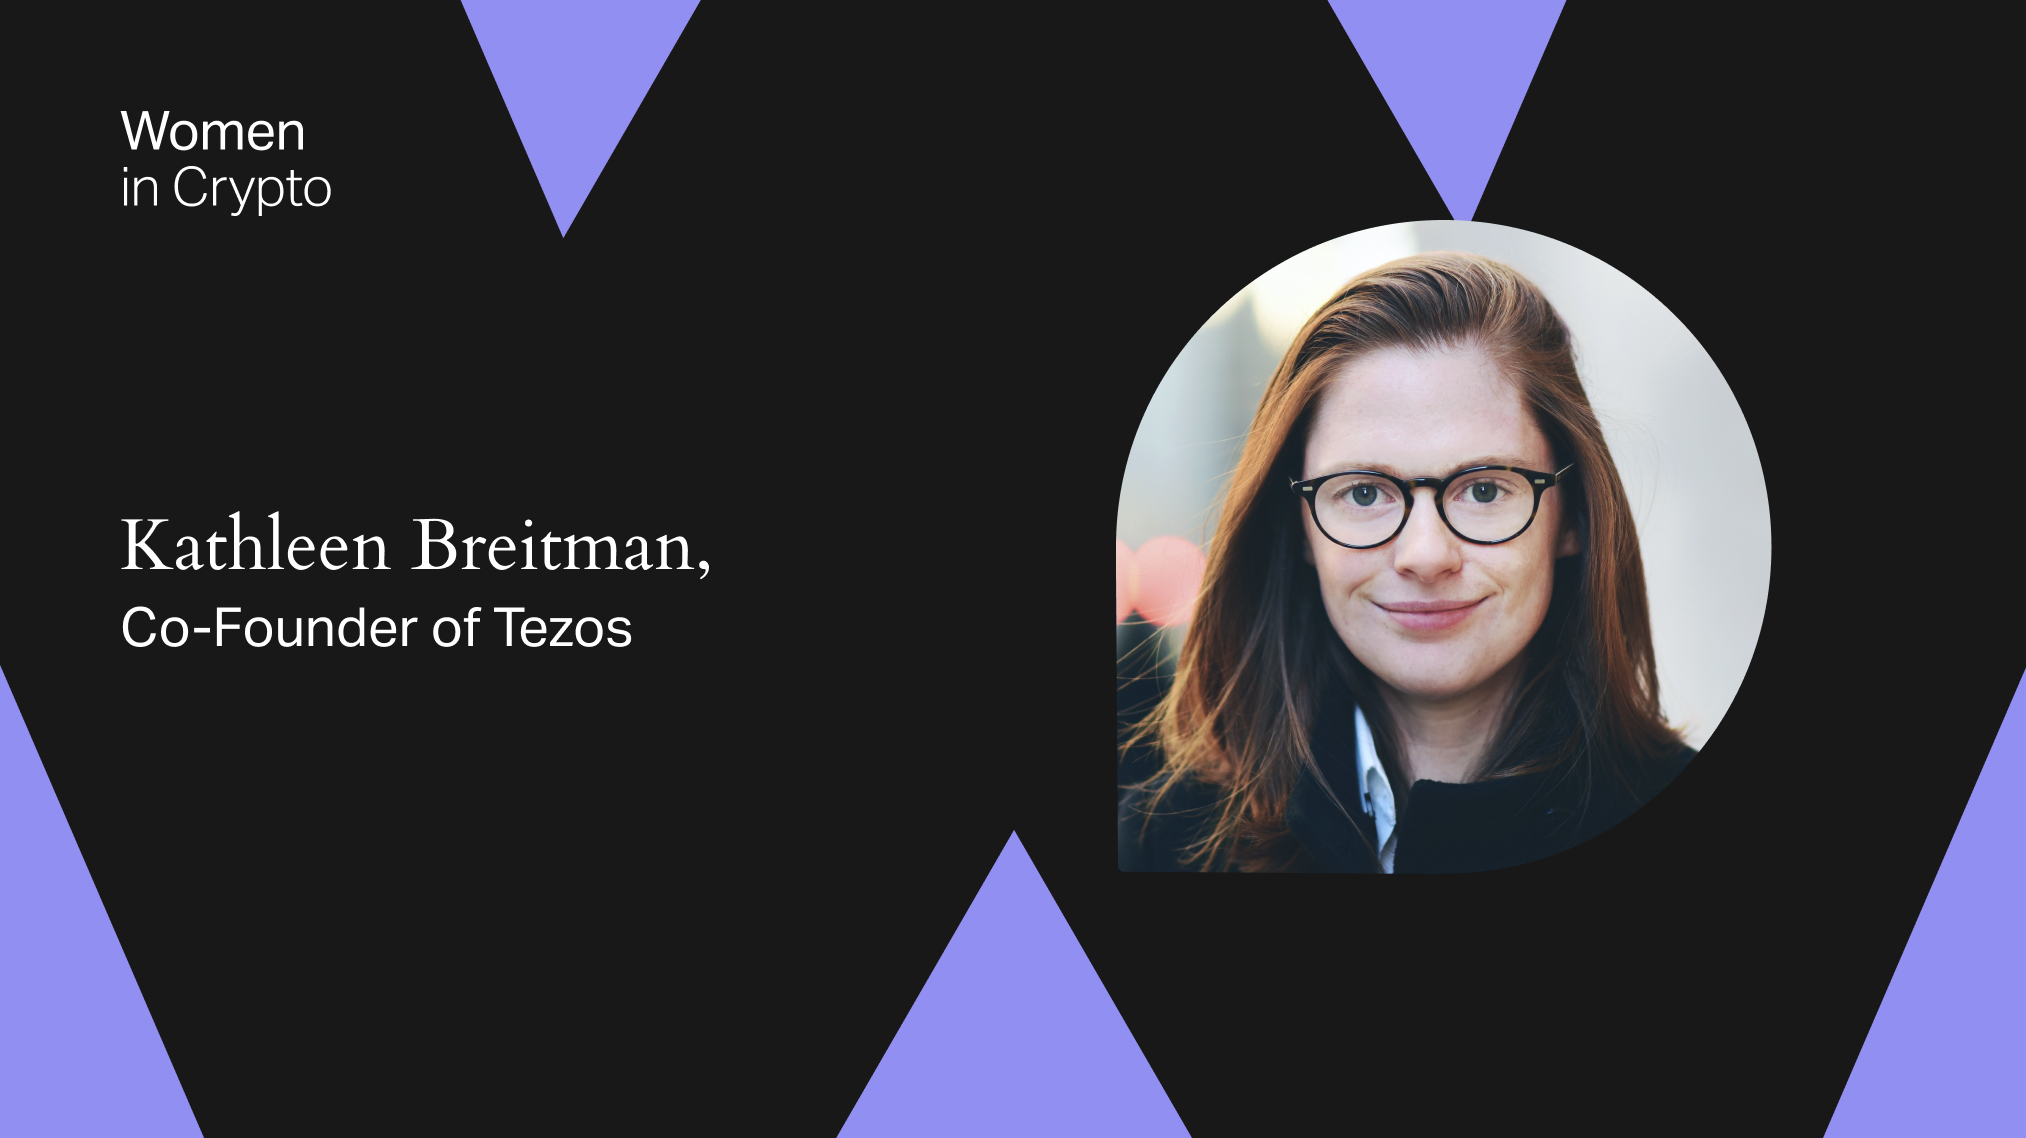 Women in Crypto: Kathleen Breitman, Co-Founder of Tezos